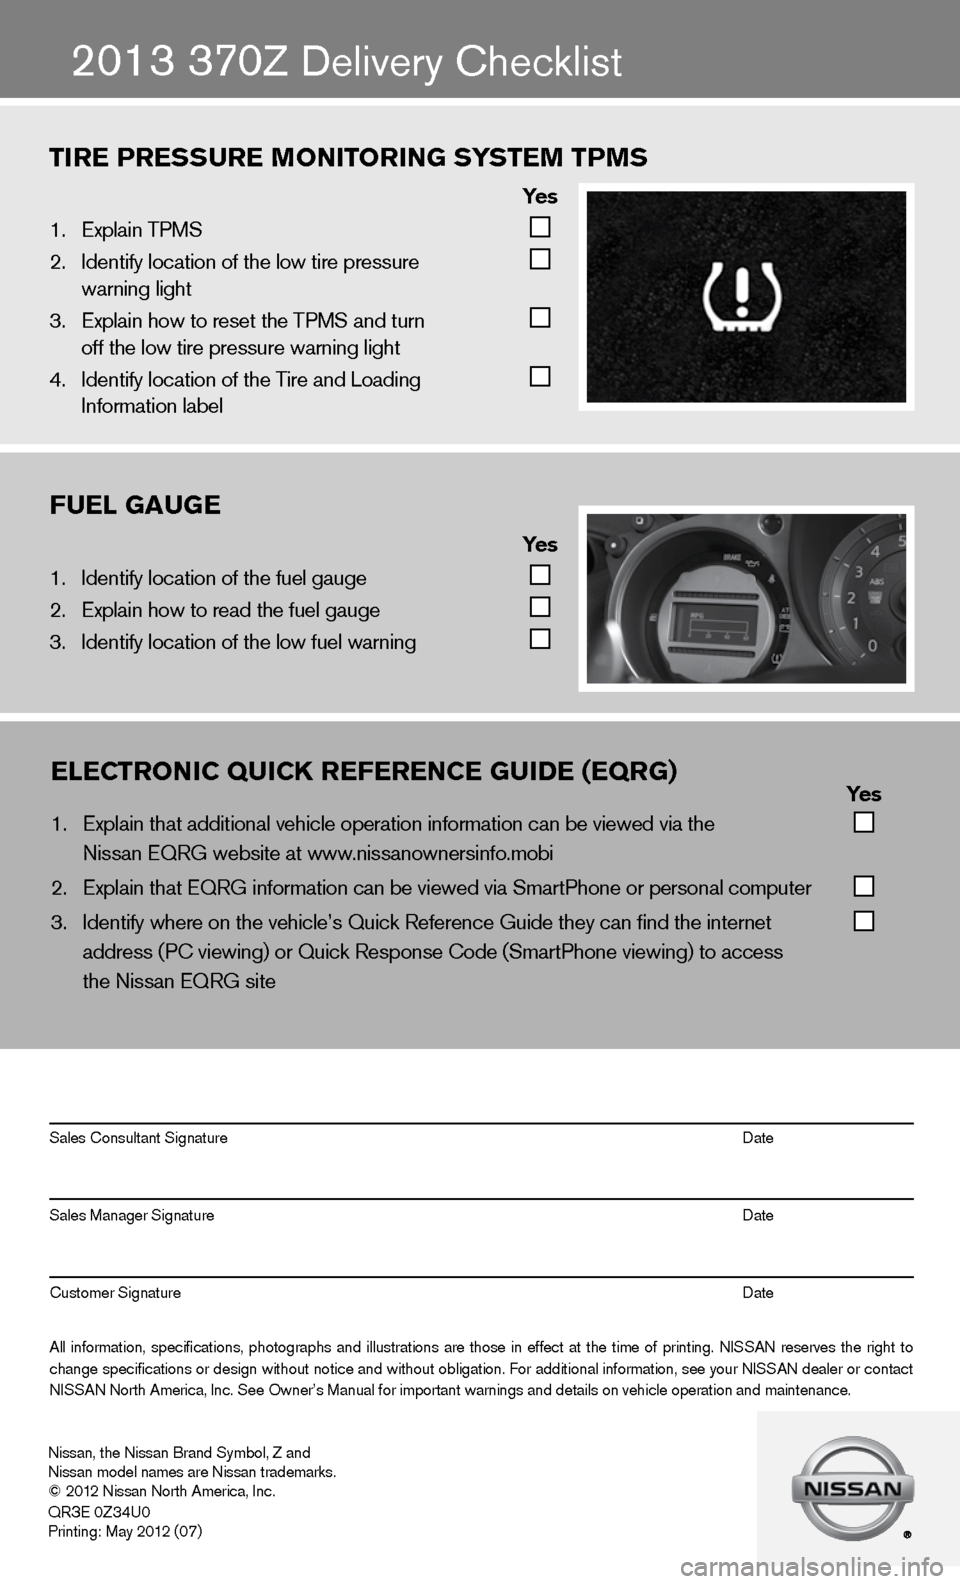 NISSAN 370Z ROADSTER 2013 Z34 Quick Reference Guide TIRE PRESSURE MONITORING SYSTEM TPMS              Yes 1.  Explain \bPMS       2. Iden\fify loca\fion o\mf \fhe low \fire pres\msure       warning ligh\f     3.  Explain how \fo rese\m\f \fhe \bPMS and